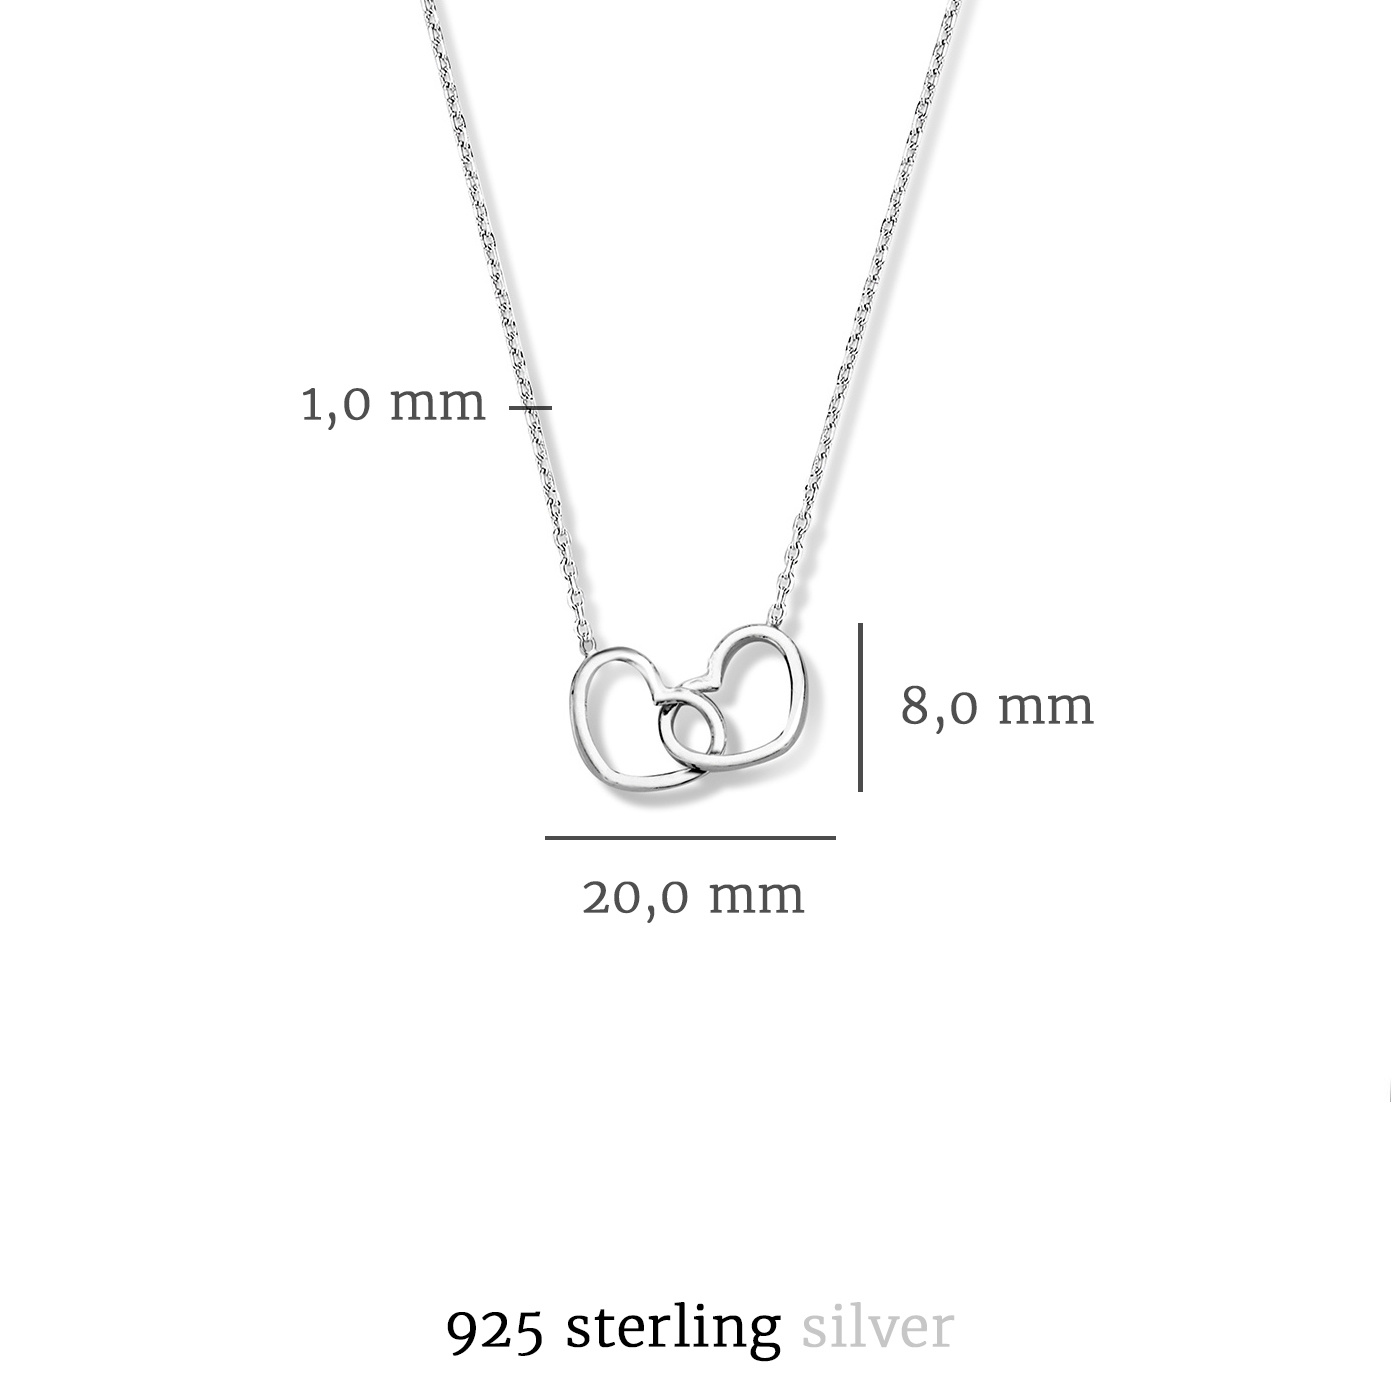 Selected Jewels Aimée 925 sterling silver necklace with 2 hearts